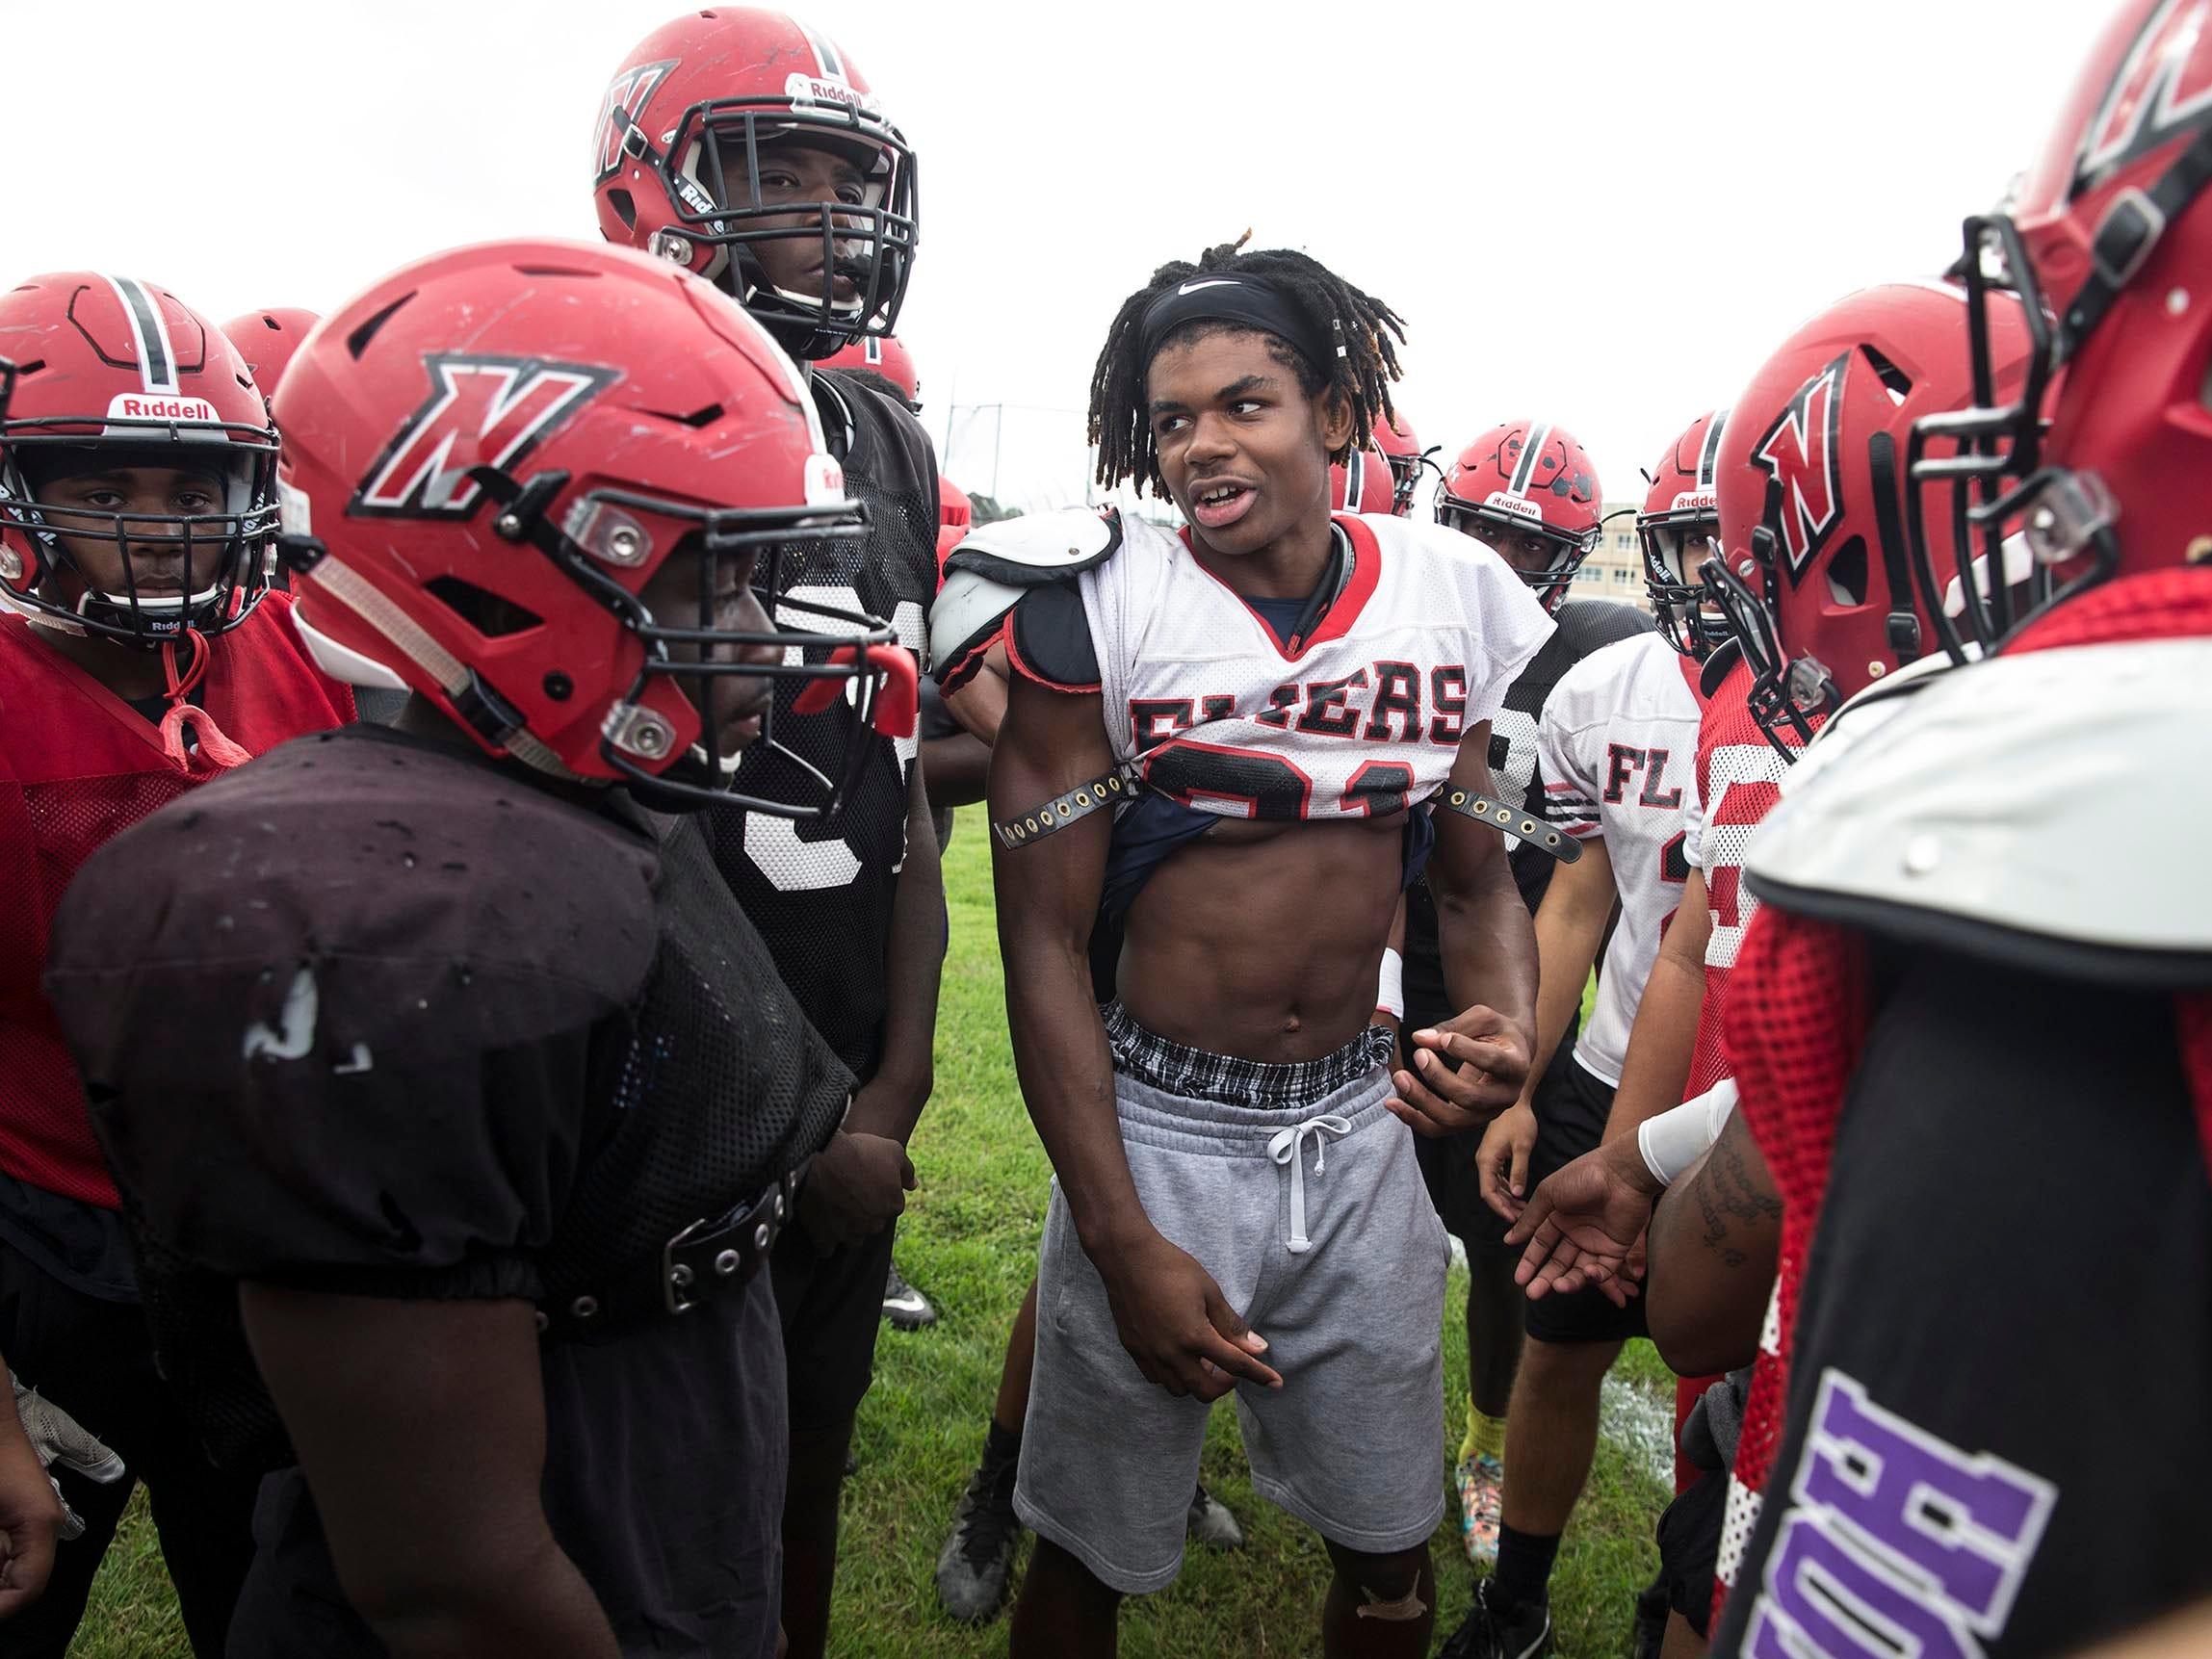 The Neptune Township High School football team has got off to a good start with the help of head coach Tarig Holman. Najiere Hutchinson, center in white shirt, gets his team fired up for practice.